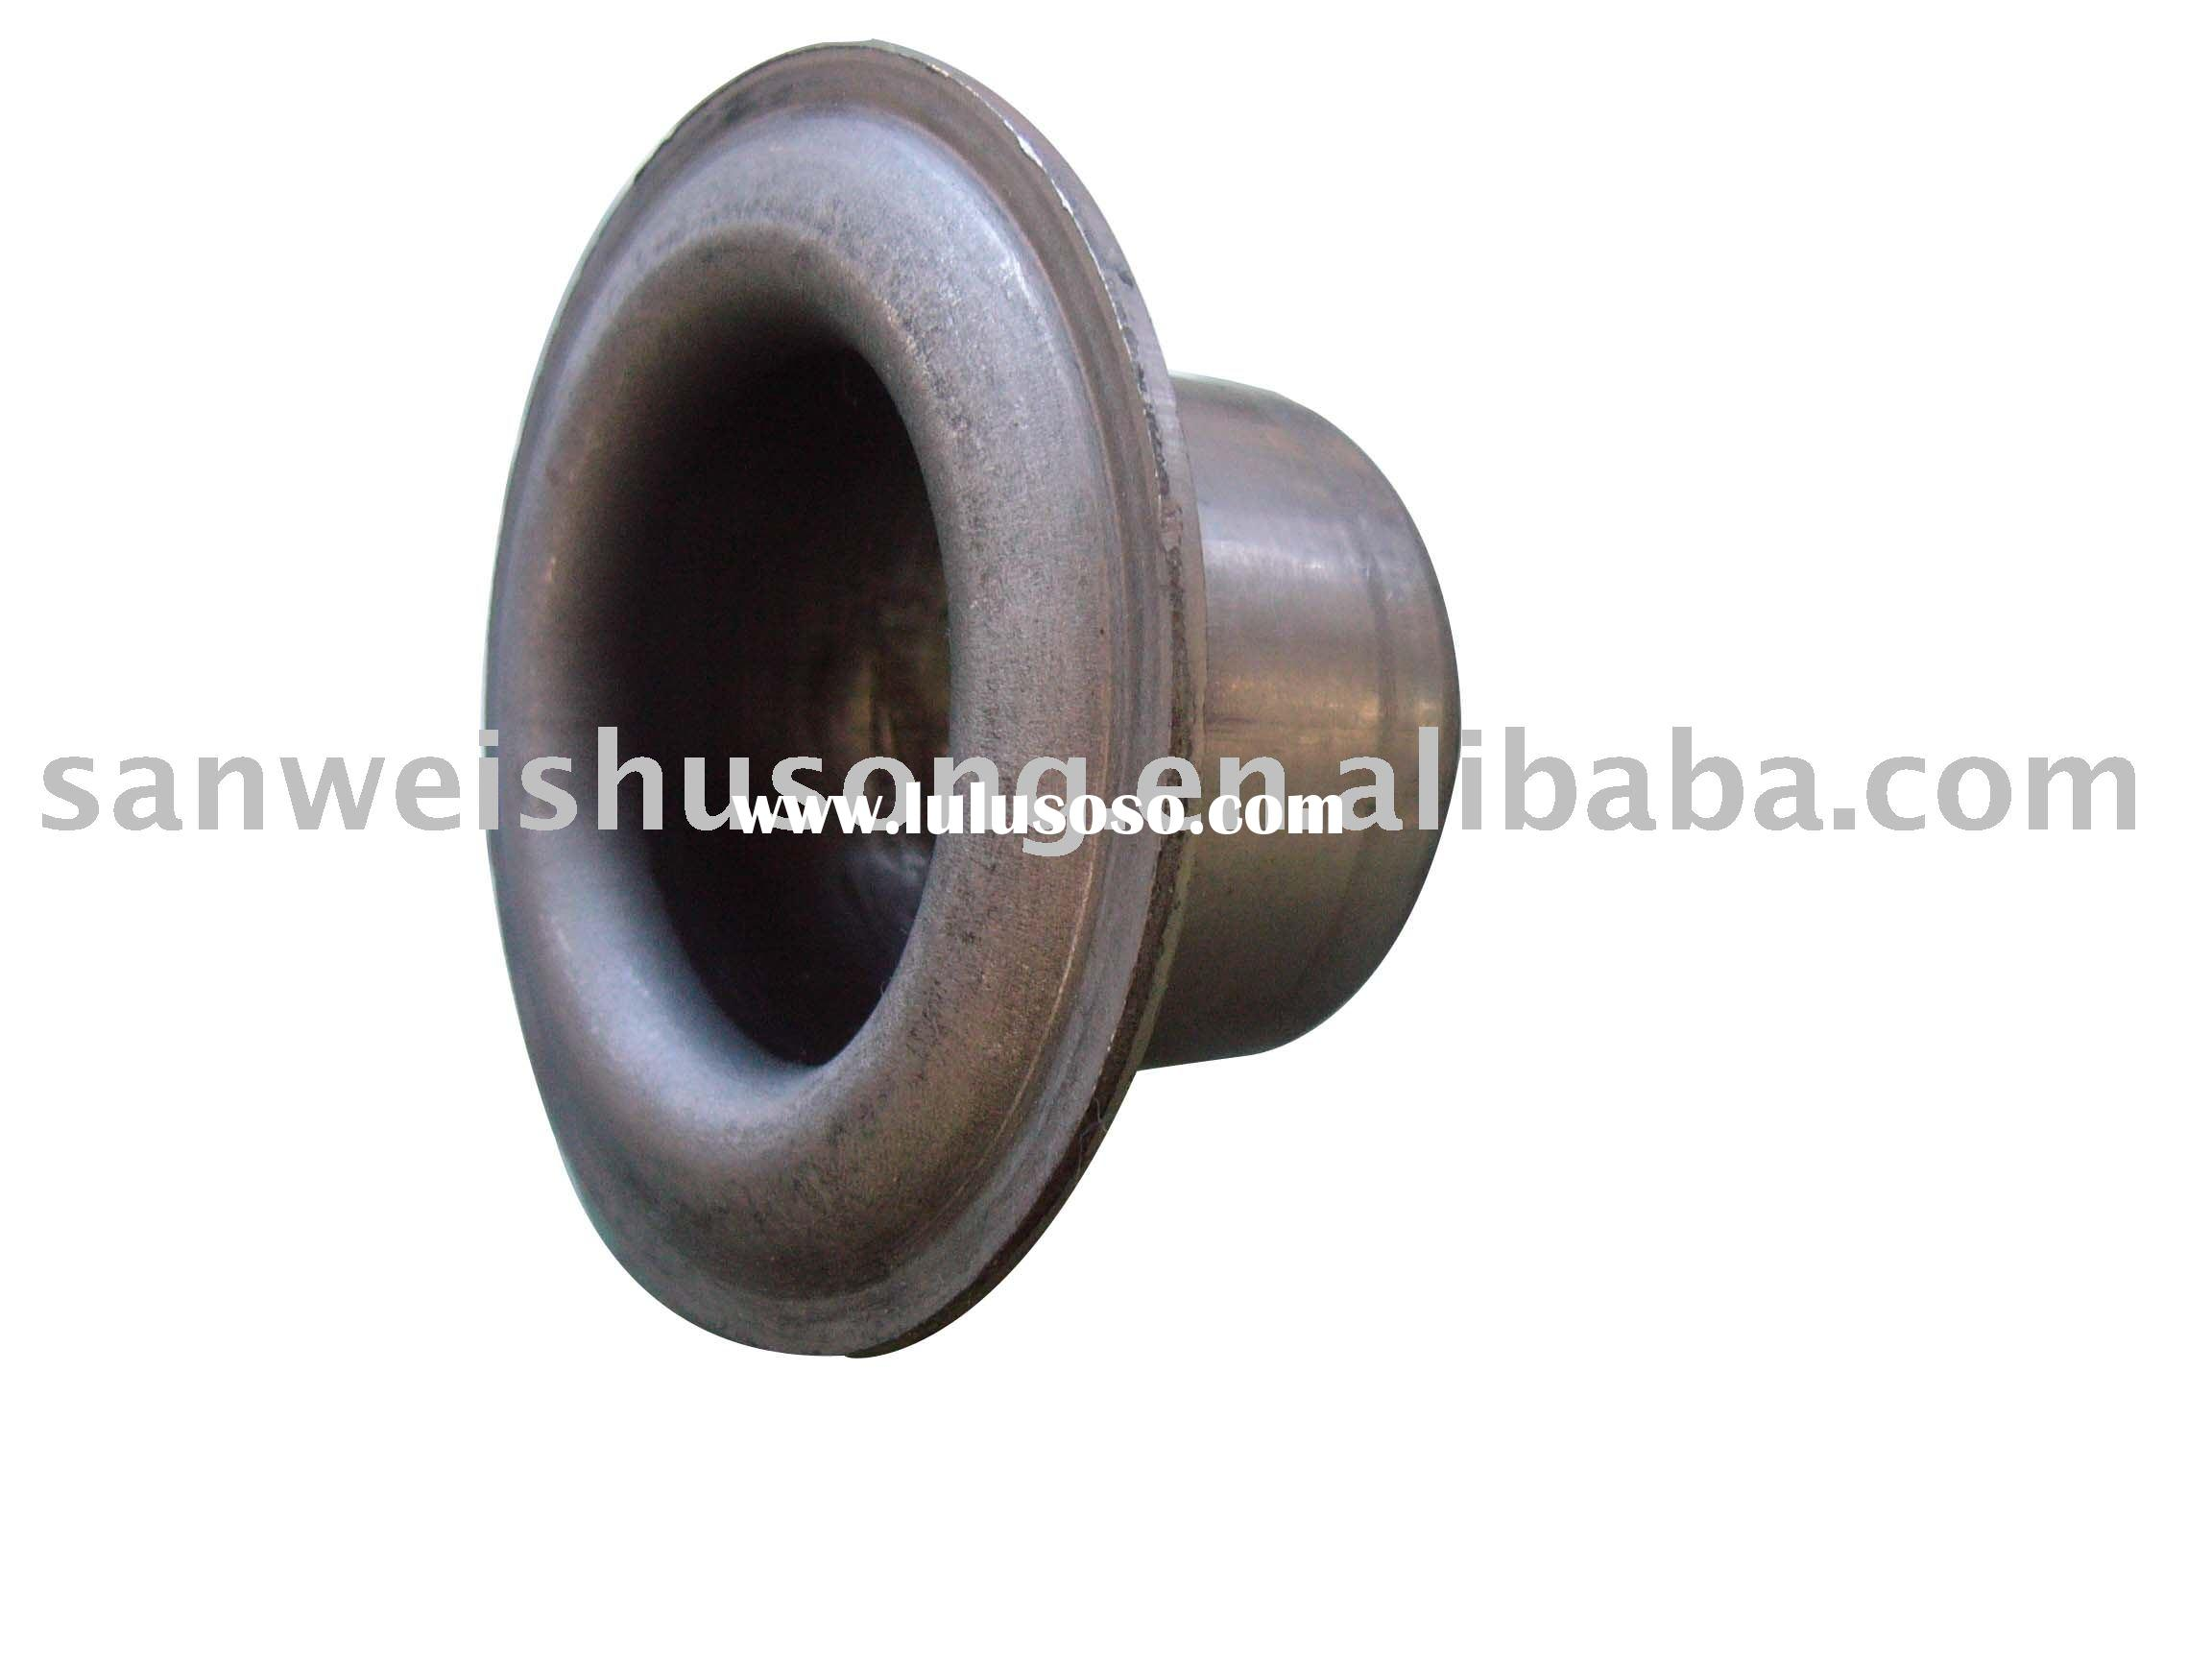 House bearing house bearing manufacturers in for House bearing